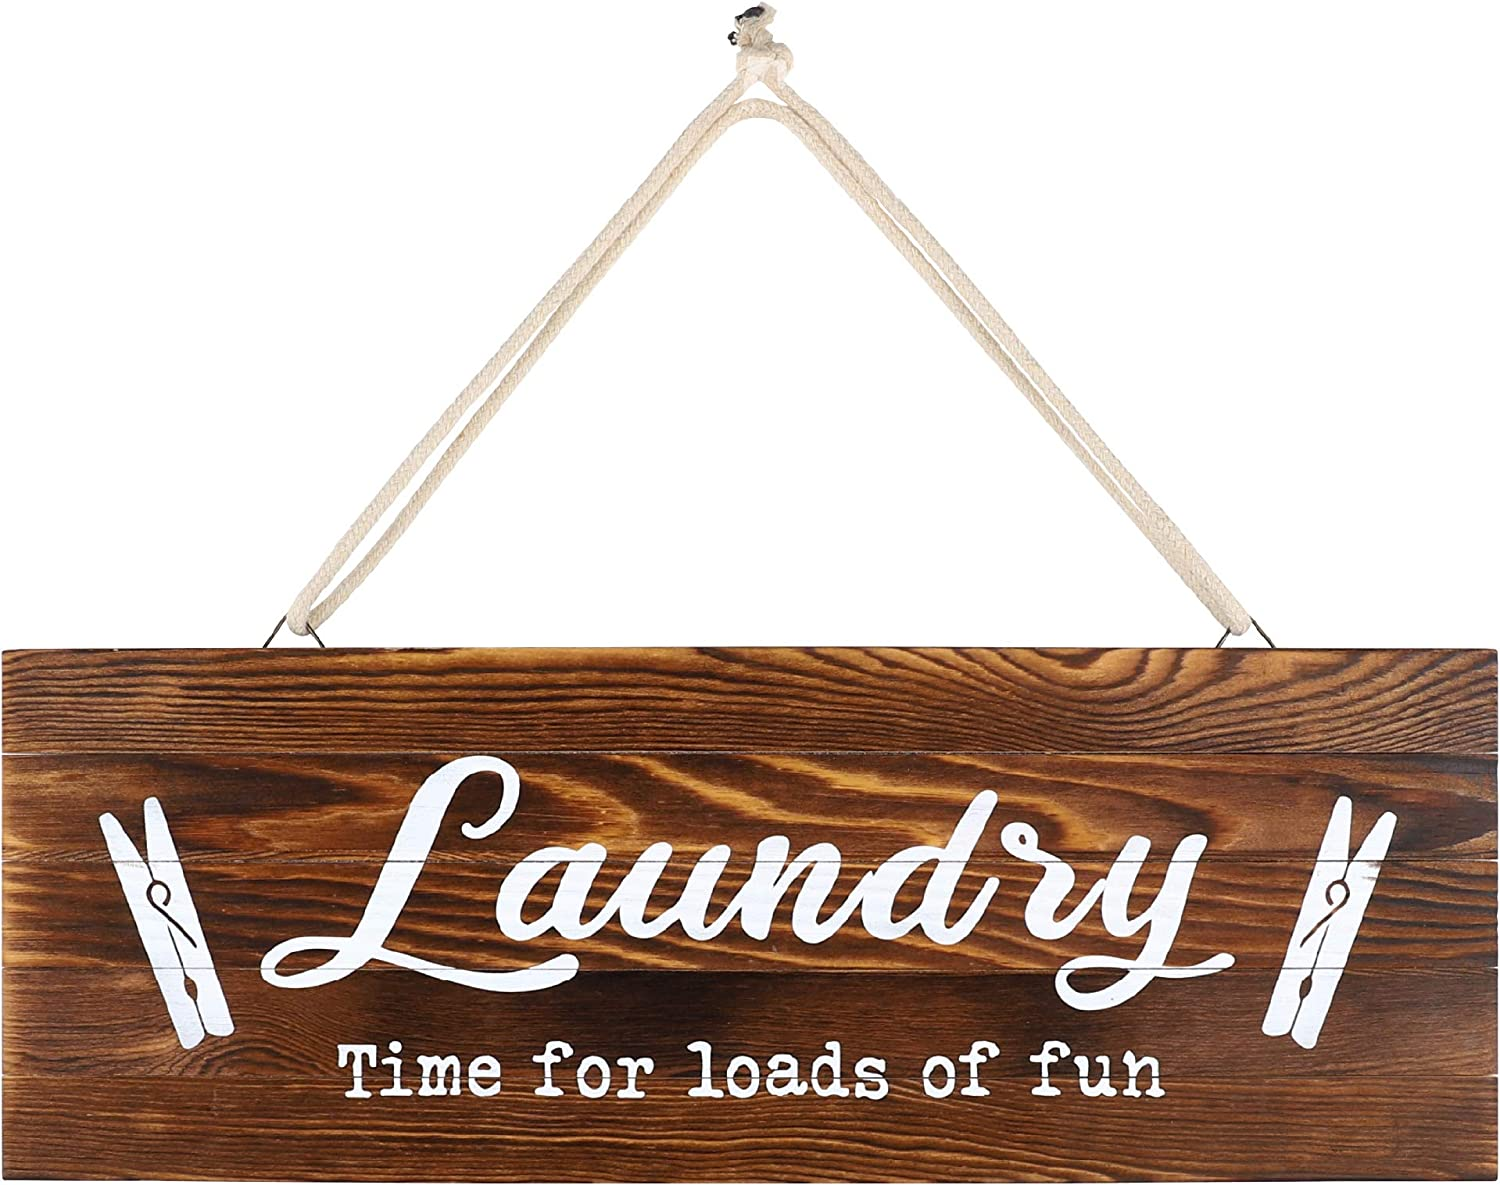 Rustic Wood Home Sign, Laundry. Real Pallet Wood Sign for Rustic Home Decor, Farmhouse Home Wall Decor with Laundry Sign. 6